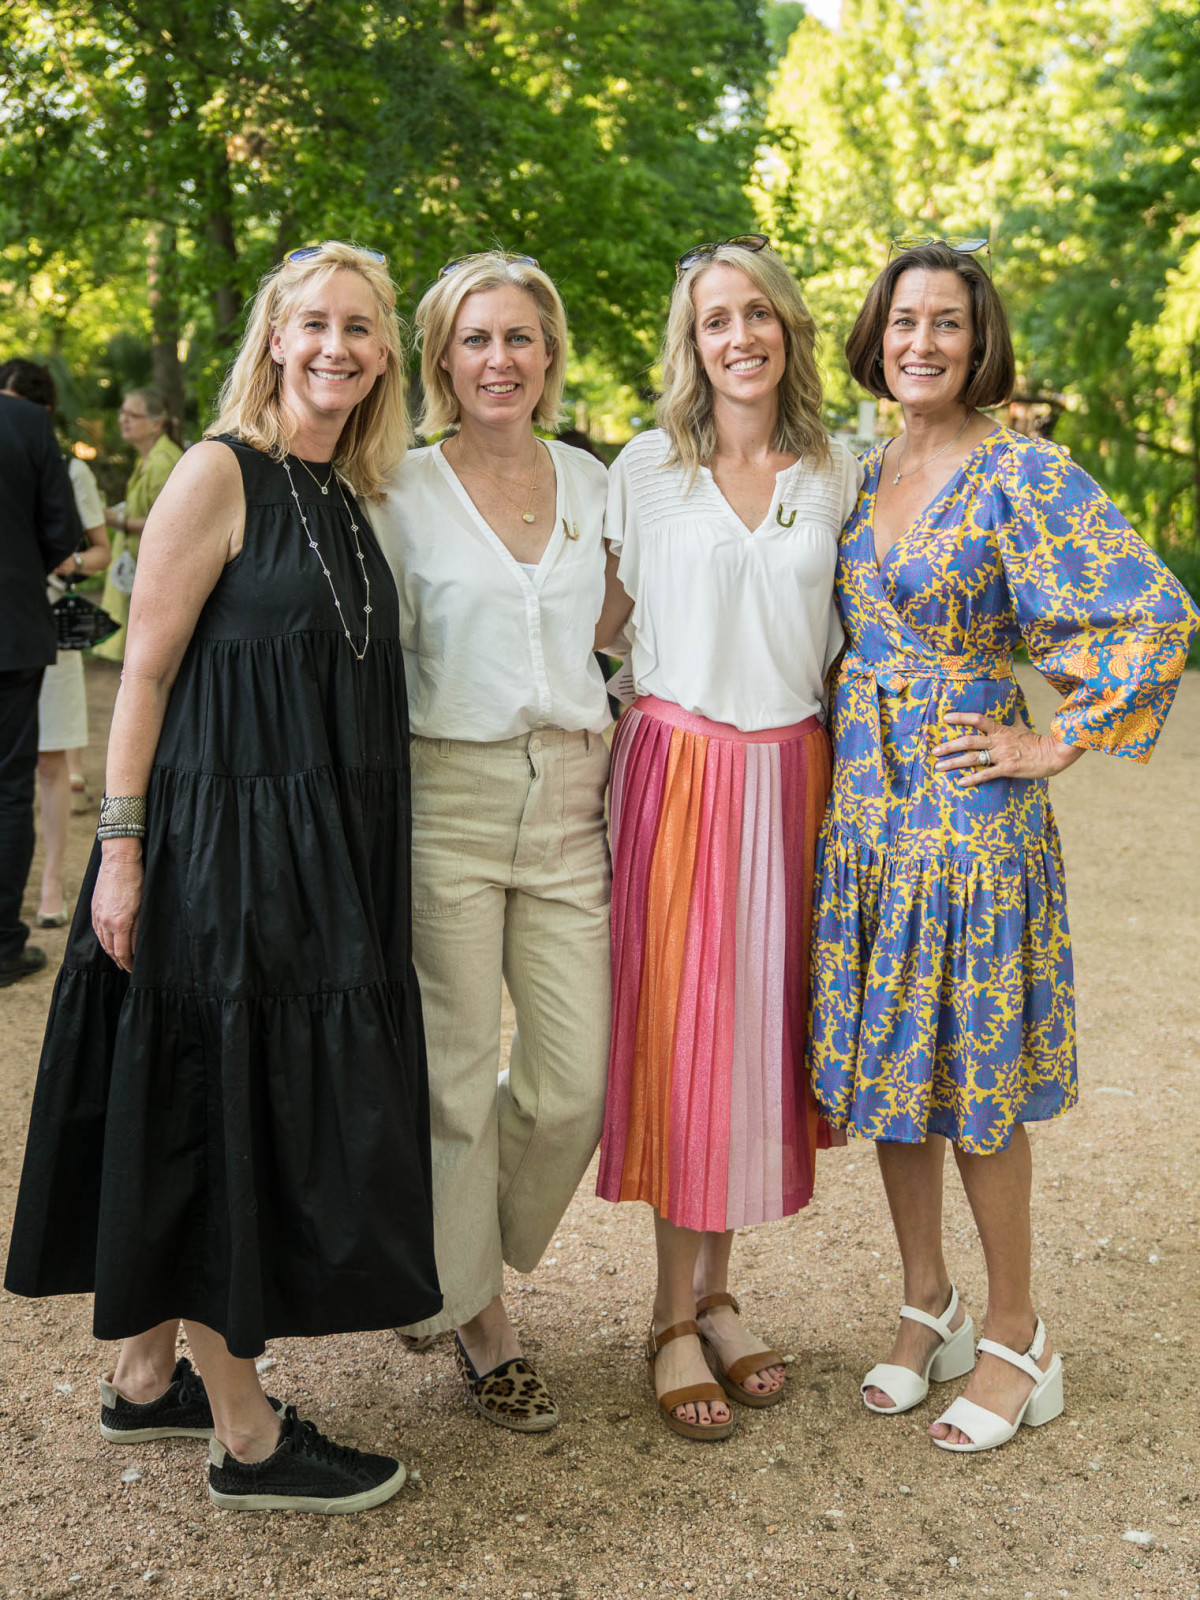 Umlauf Garden Party 2019 Alison Edwards Ali Reyna Ragan Melton Frances Thompson